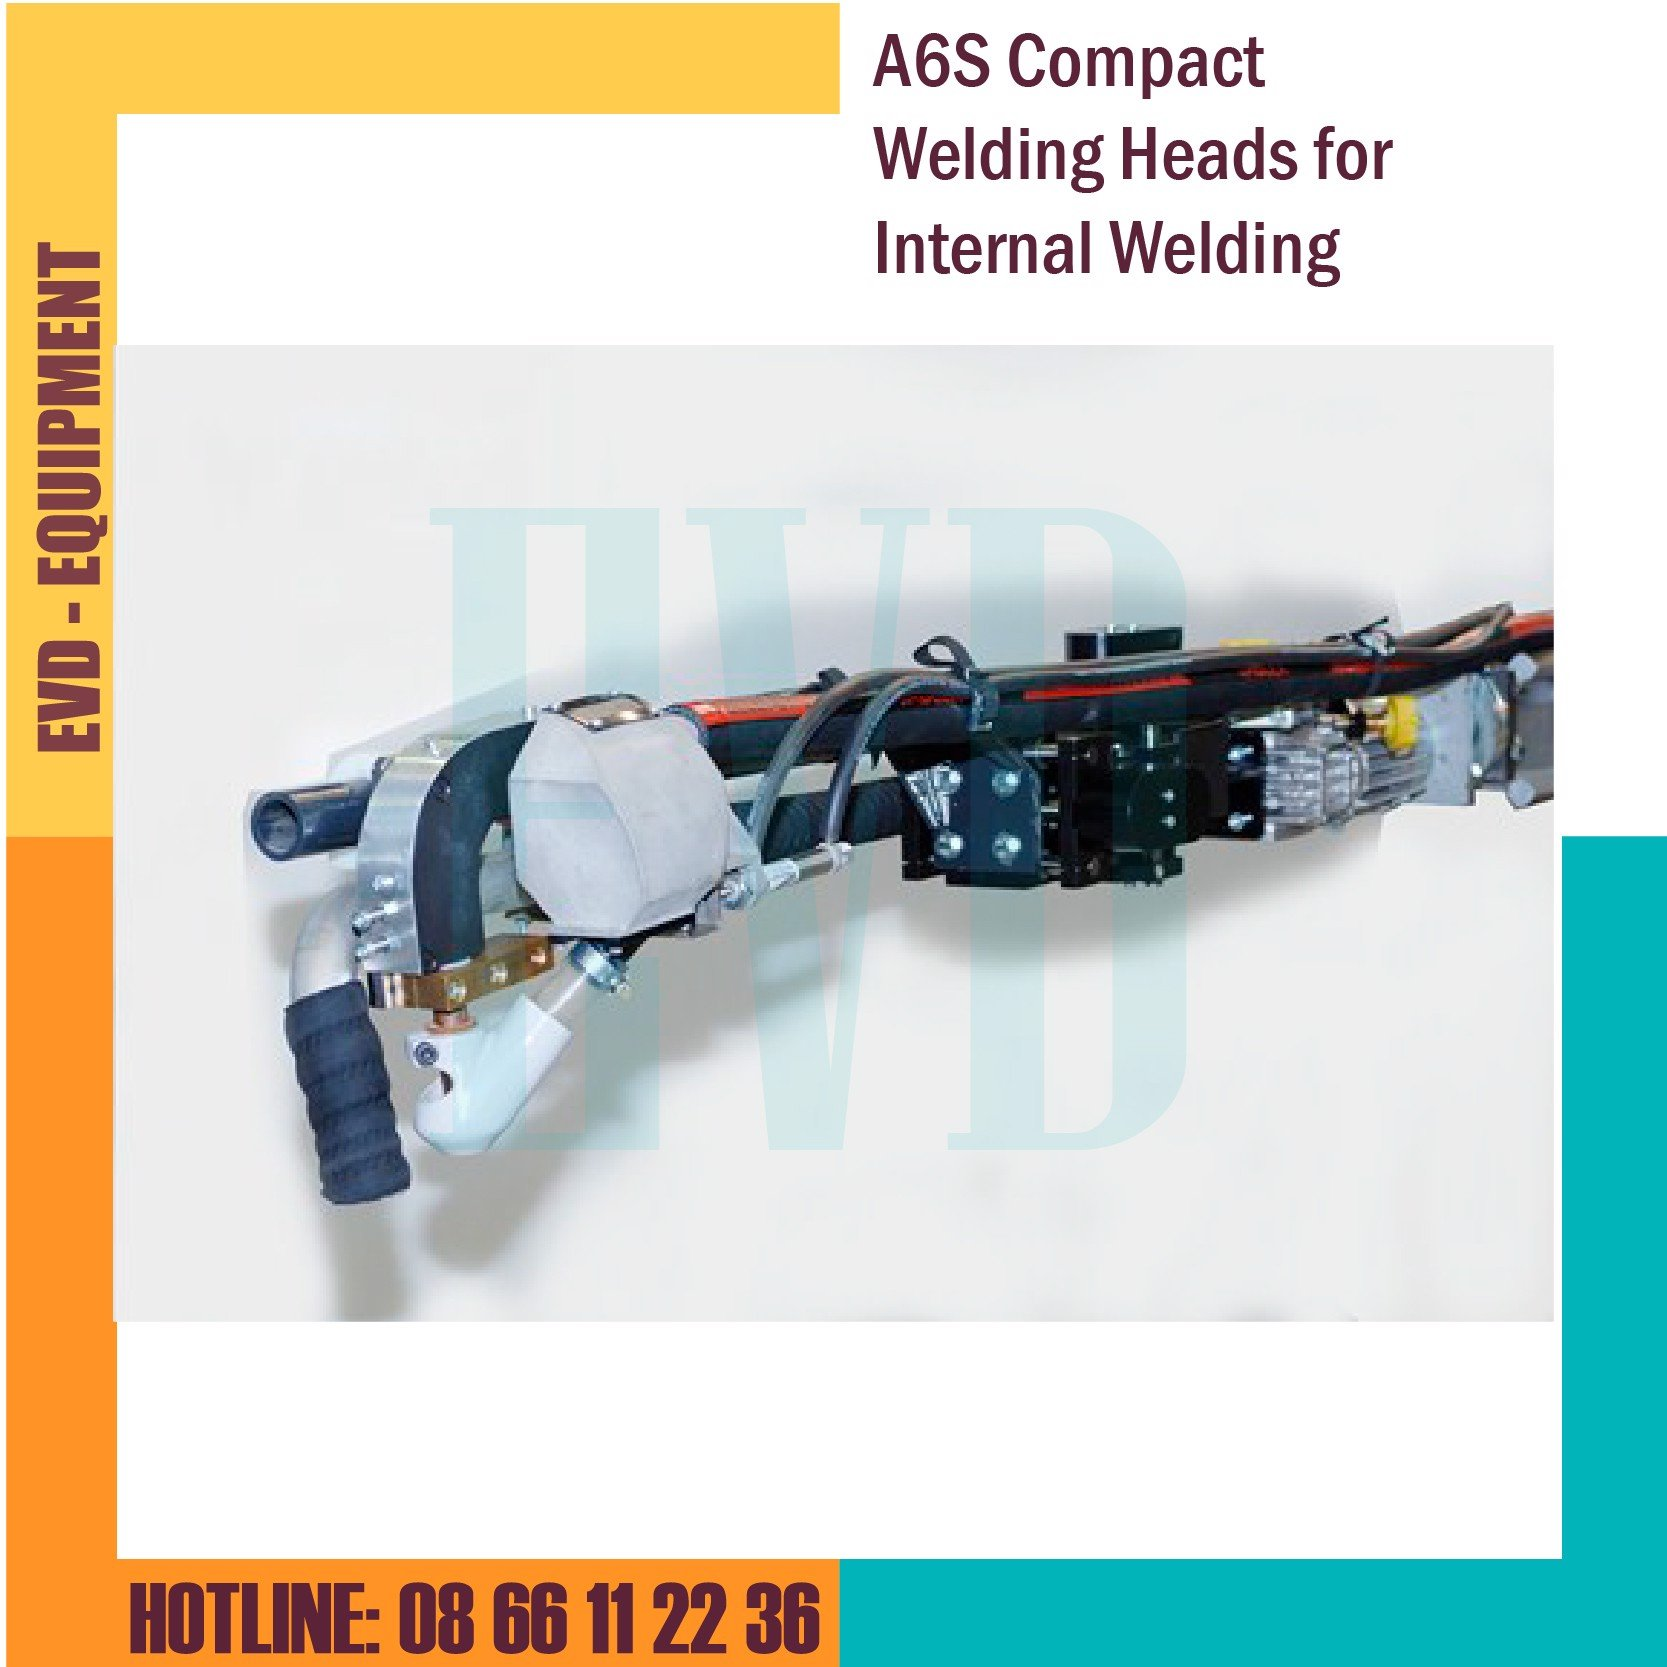 Đầu hàn ESAB - A6S Compact Welding Heads for Internal Welding